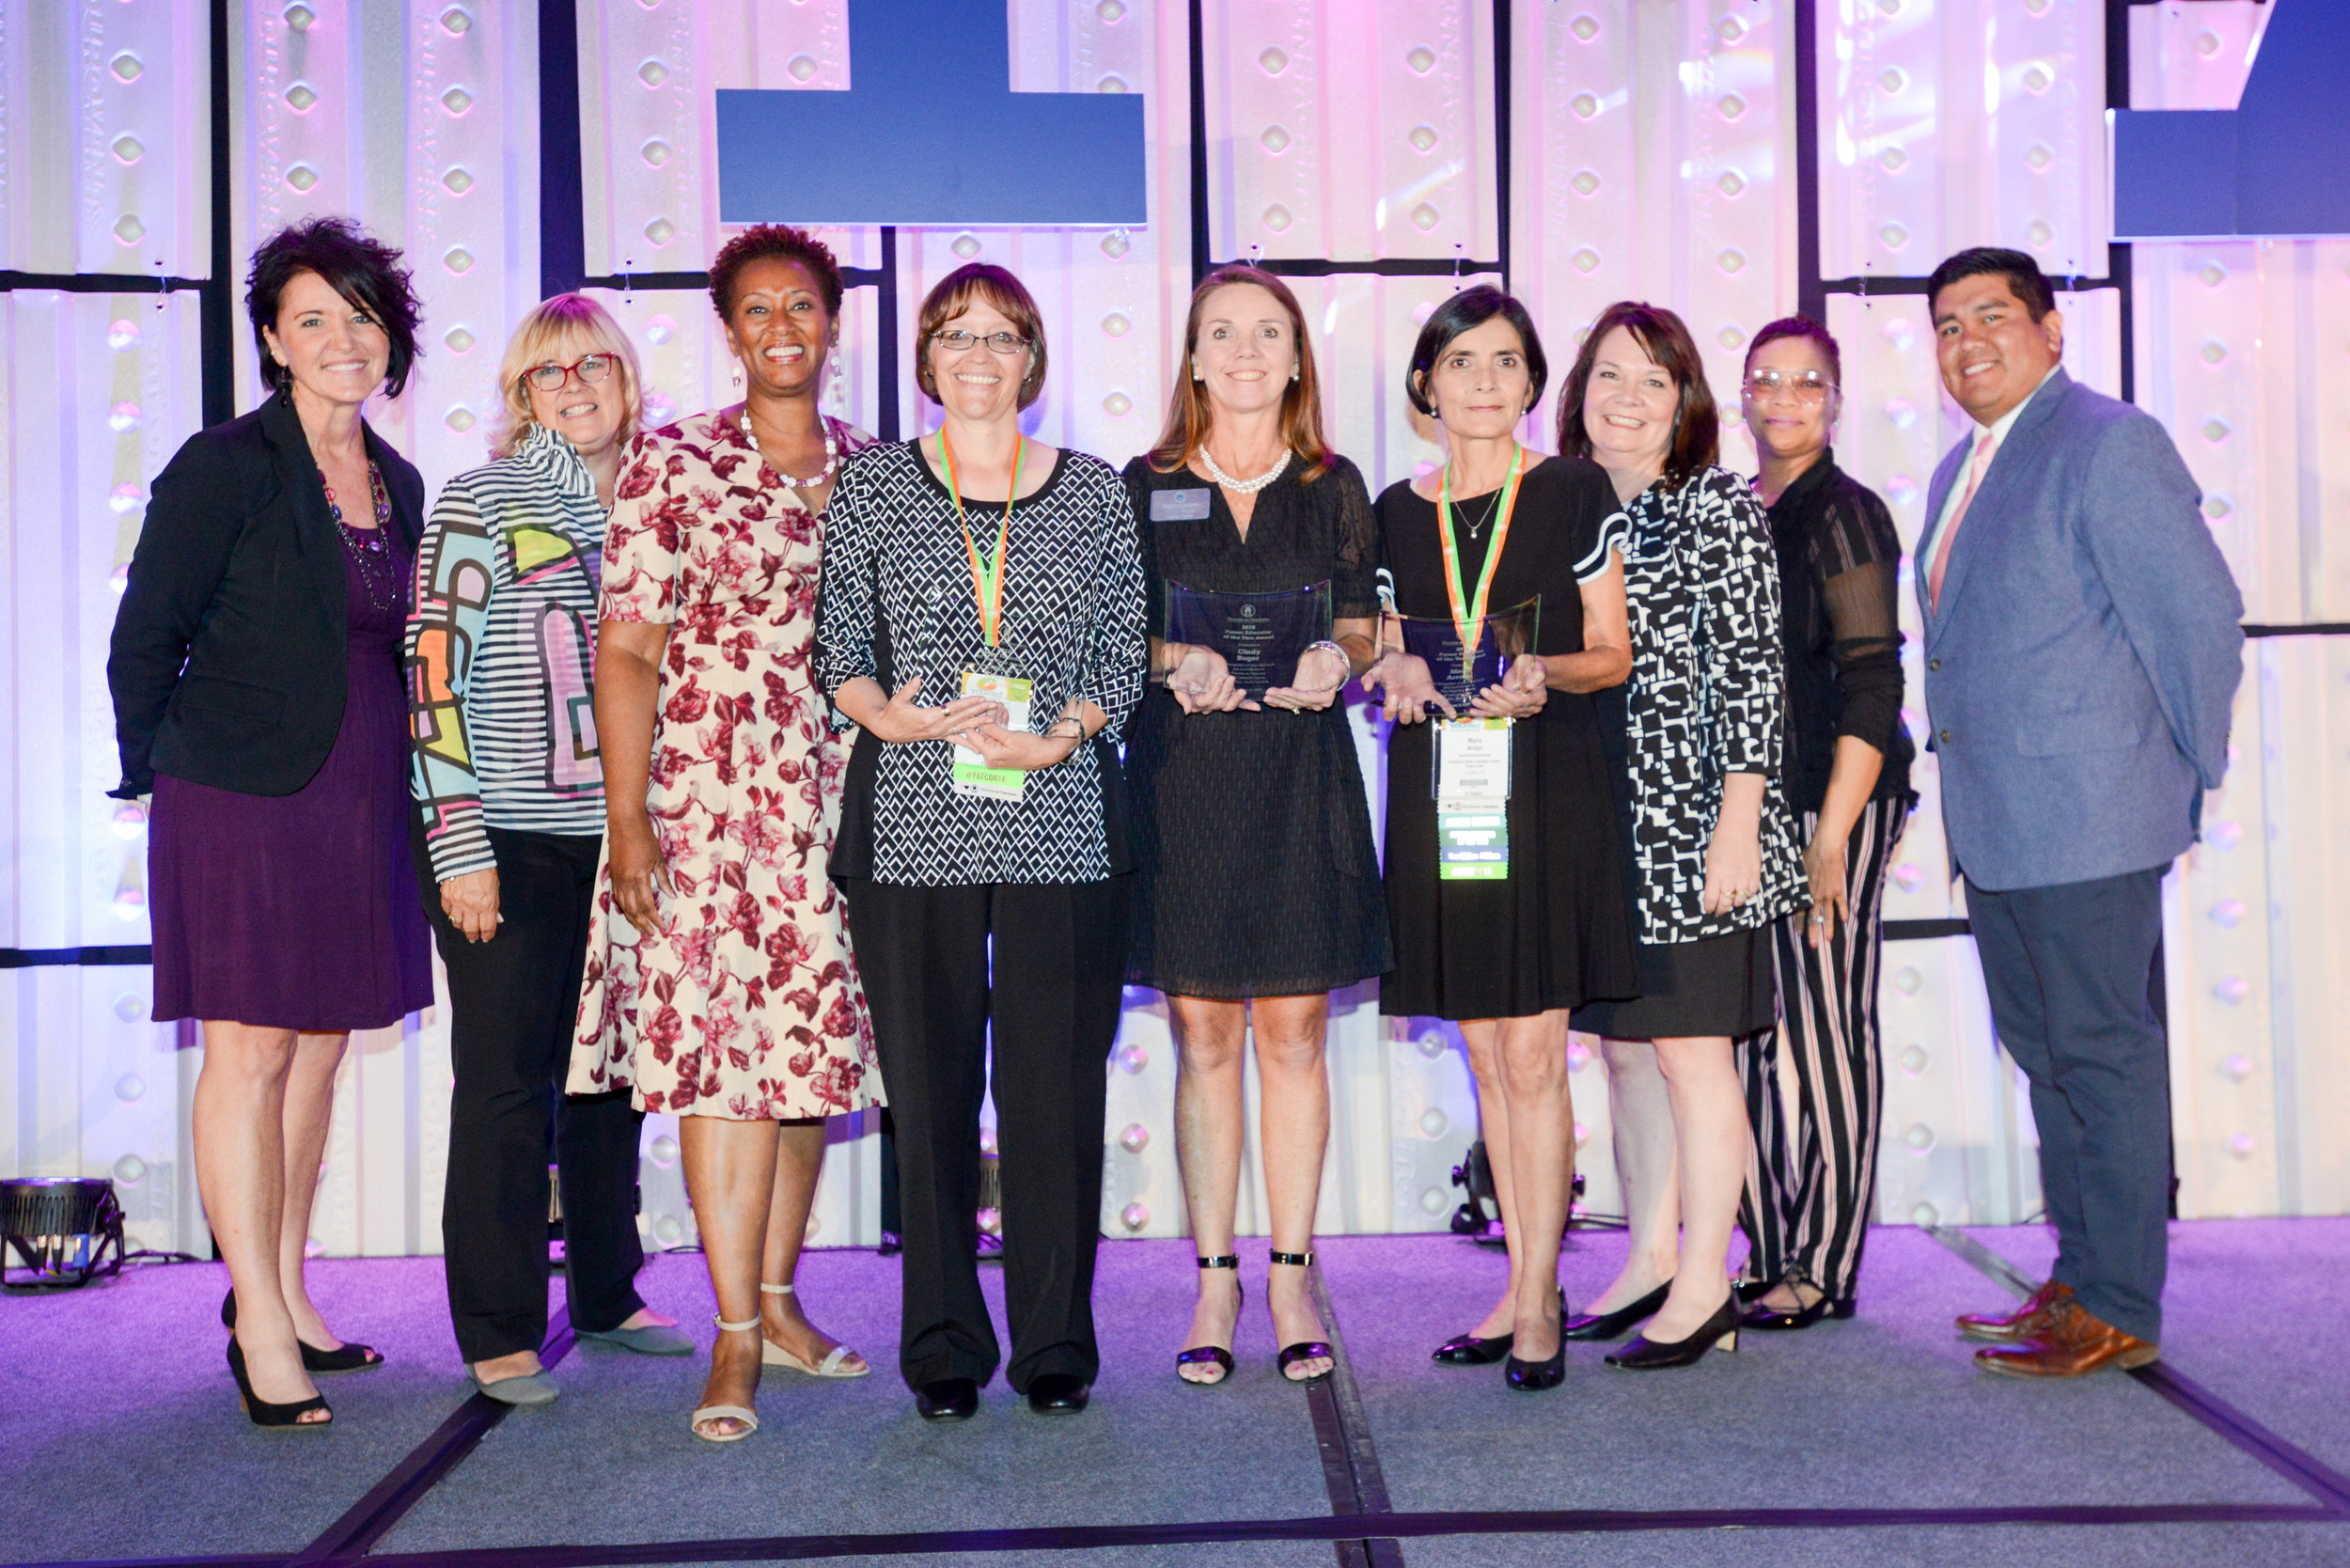 Parent Educators of the Year: Kristina Gorshe, Catholic Charities Diocese of Pueblo; Cindy Boger, PAT of Catawba County; Maria Arroyo , The Parenting Center of Lexington